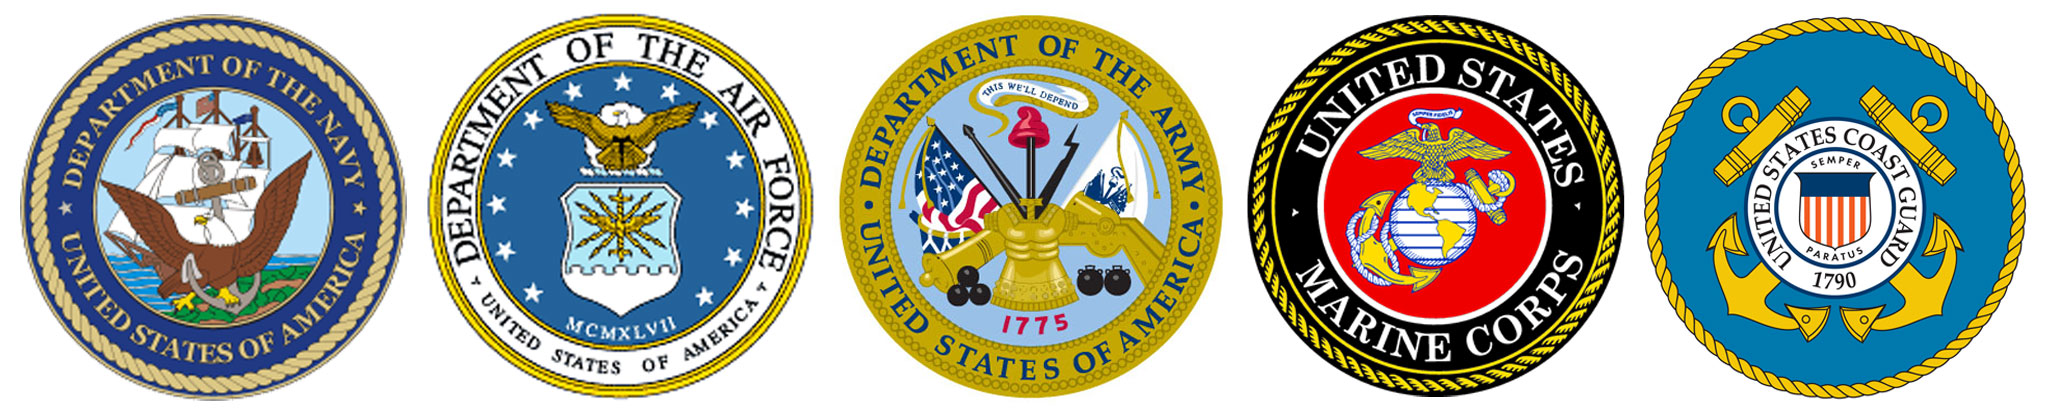 US Military Branches Maine